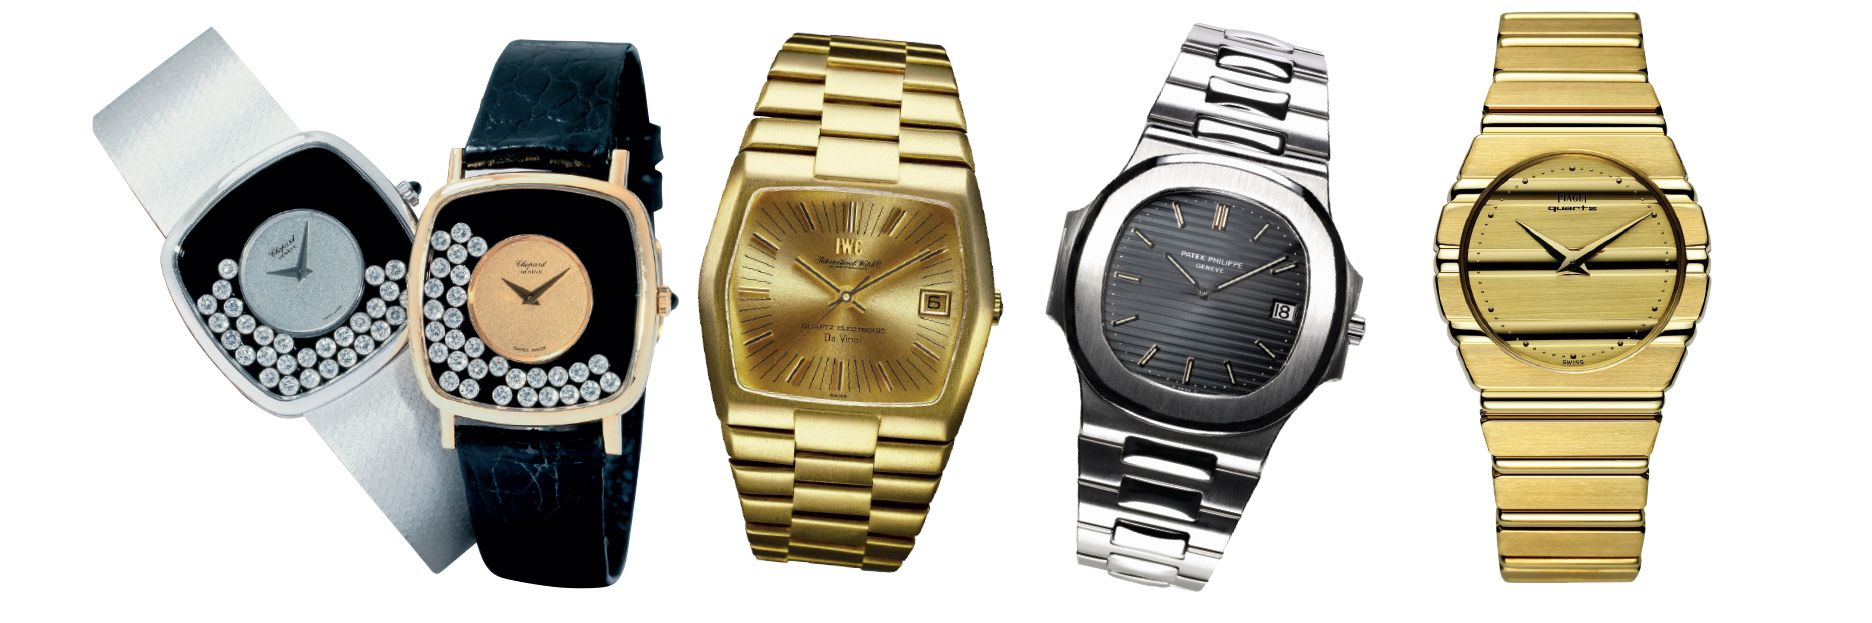 Then & Now: 10 Iconic Watches From The '70s